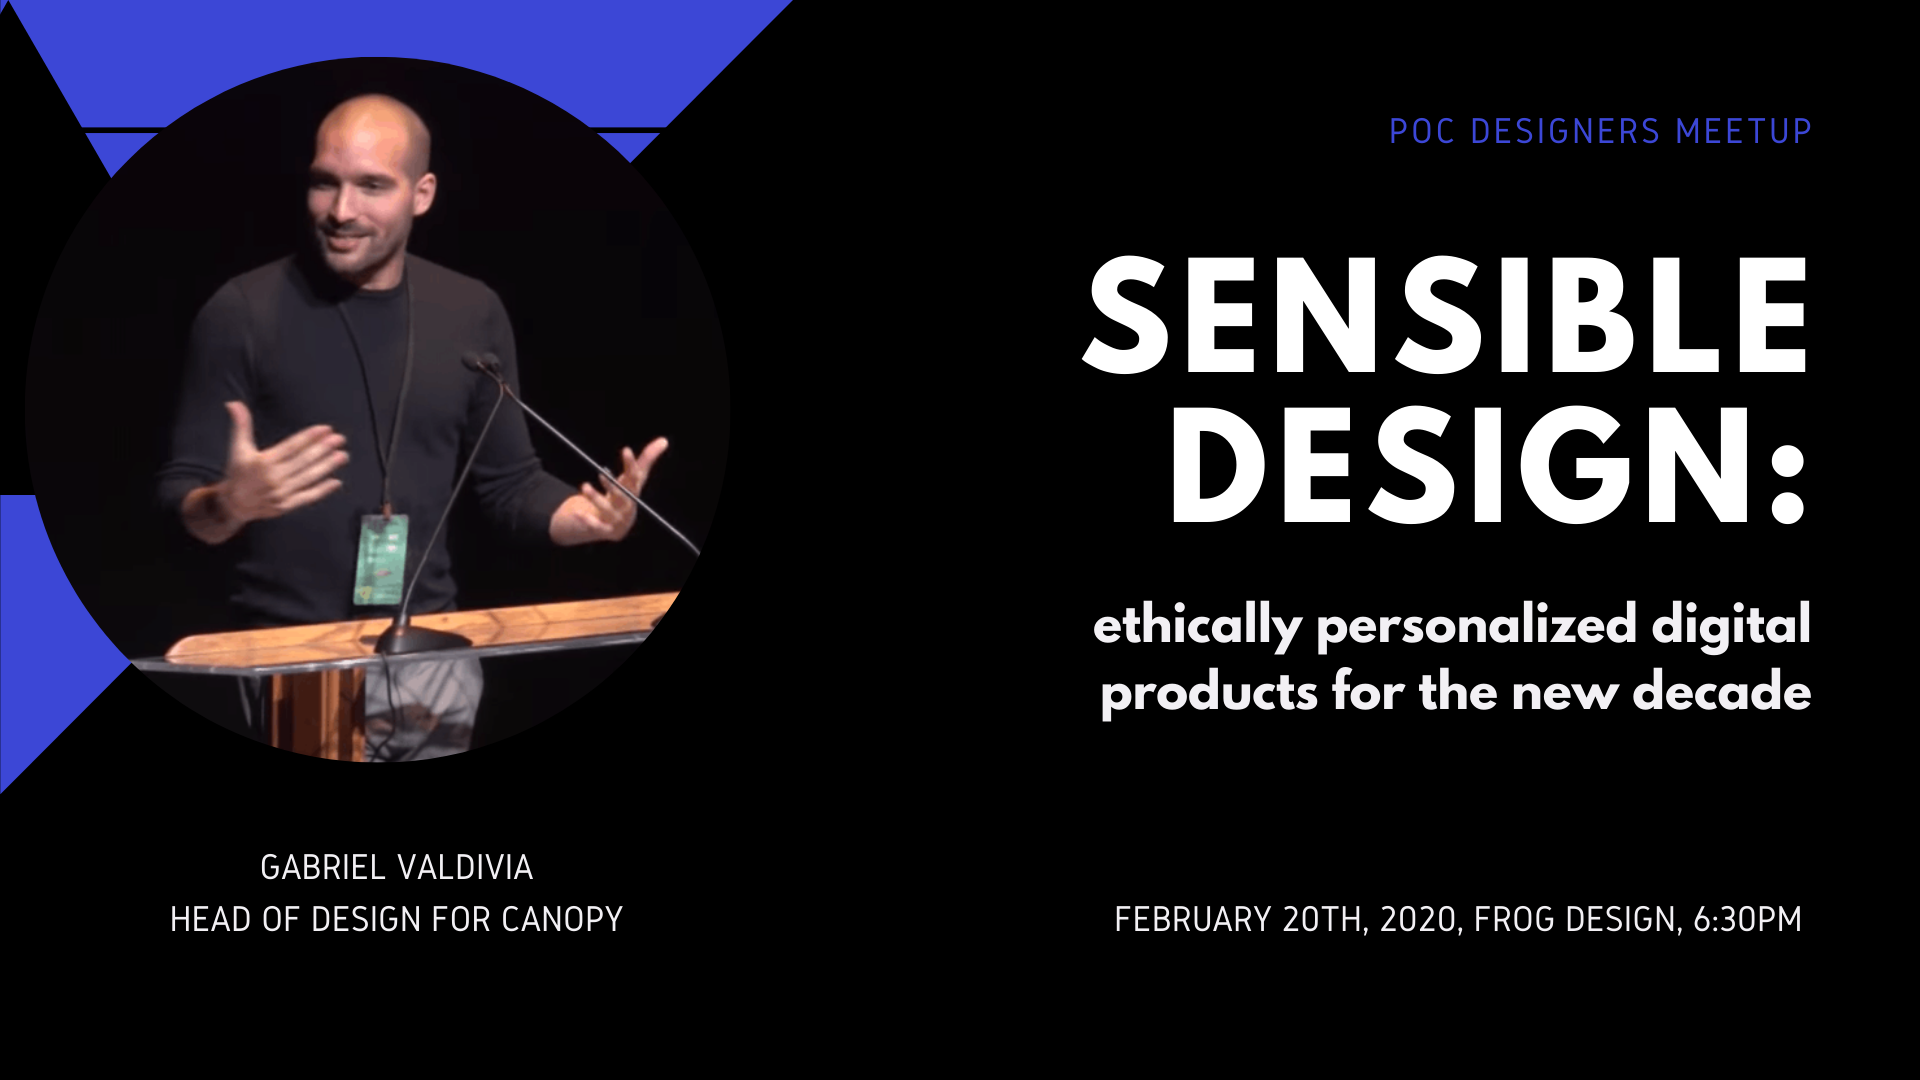 Sensible Design: ethically personalized digital products for the new decade